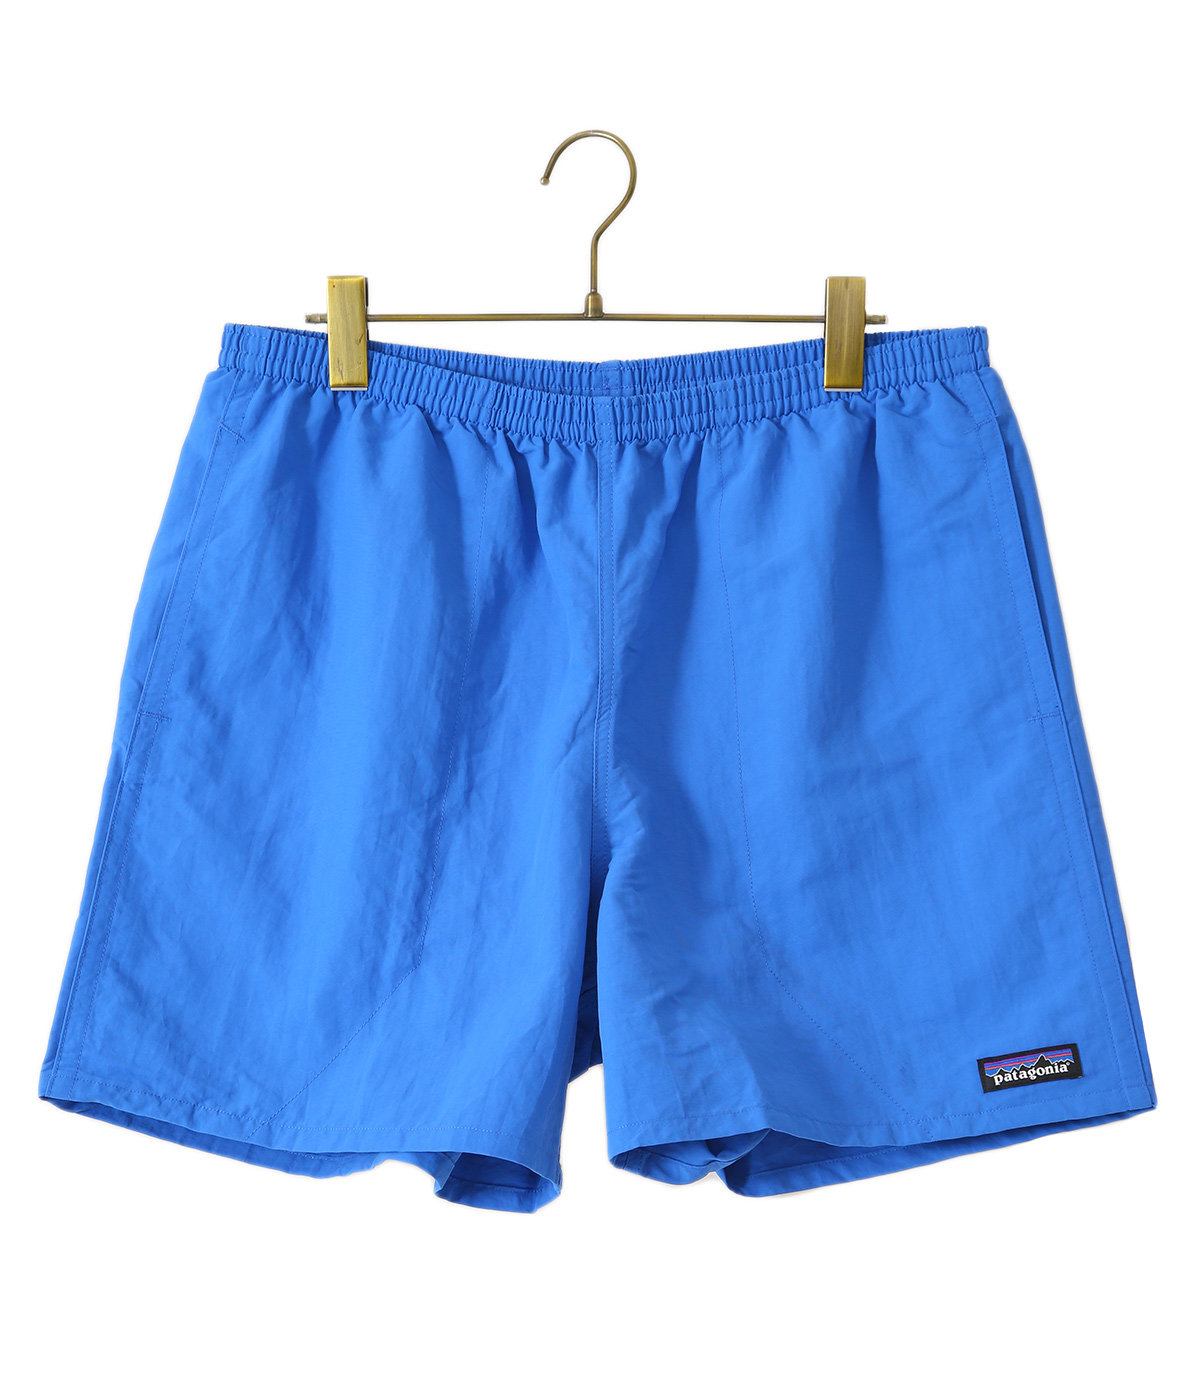 M's Baggies Shorts -5in""